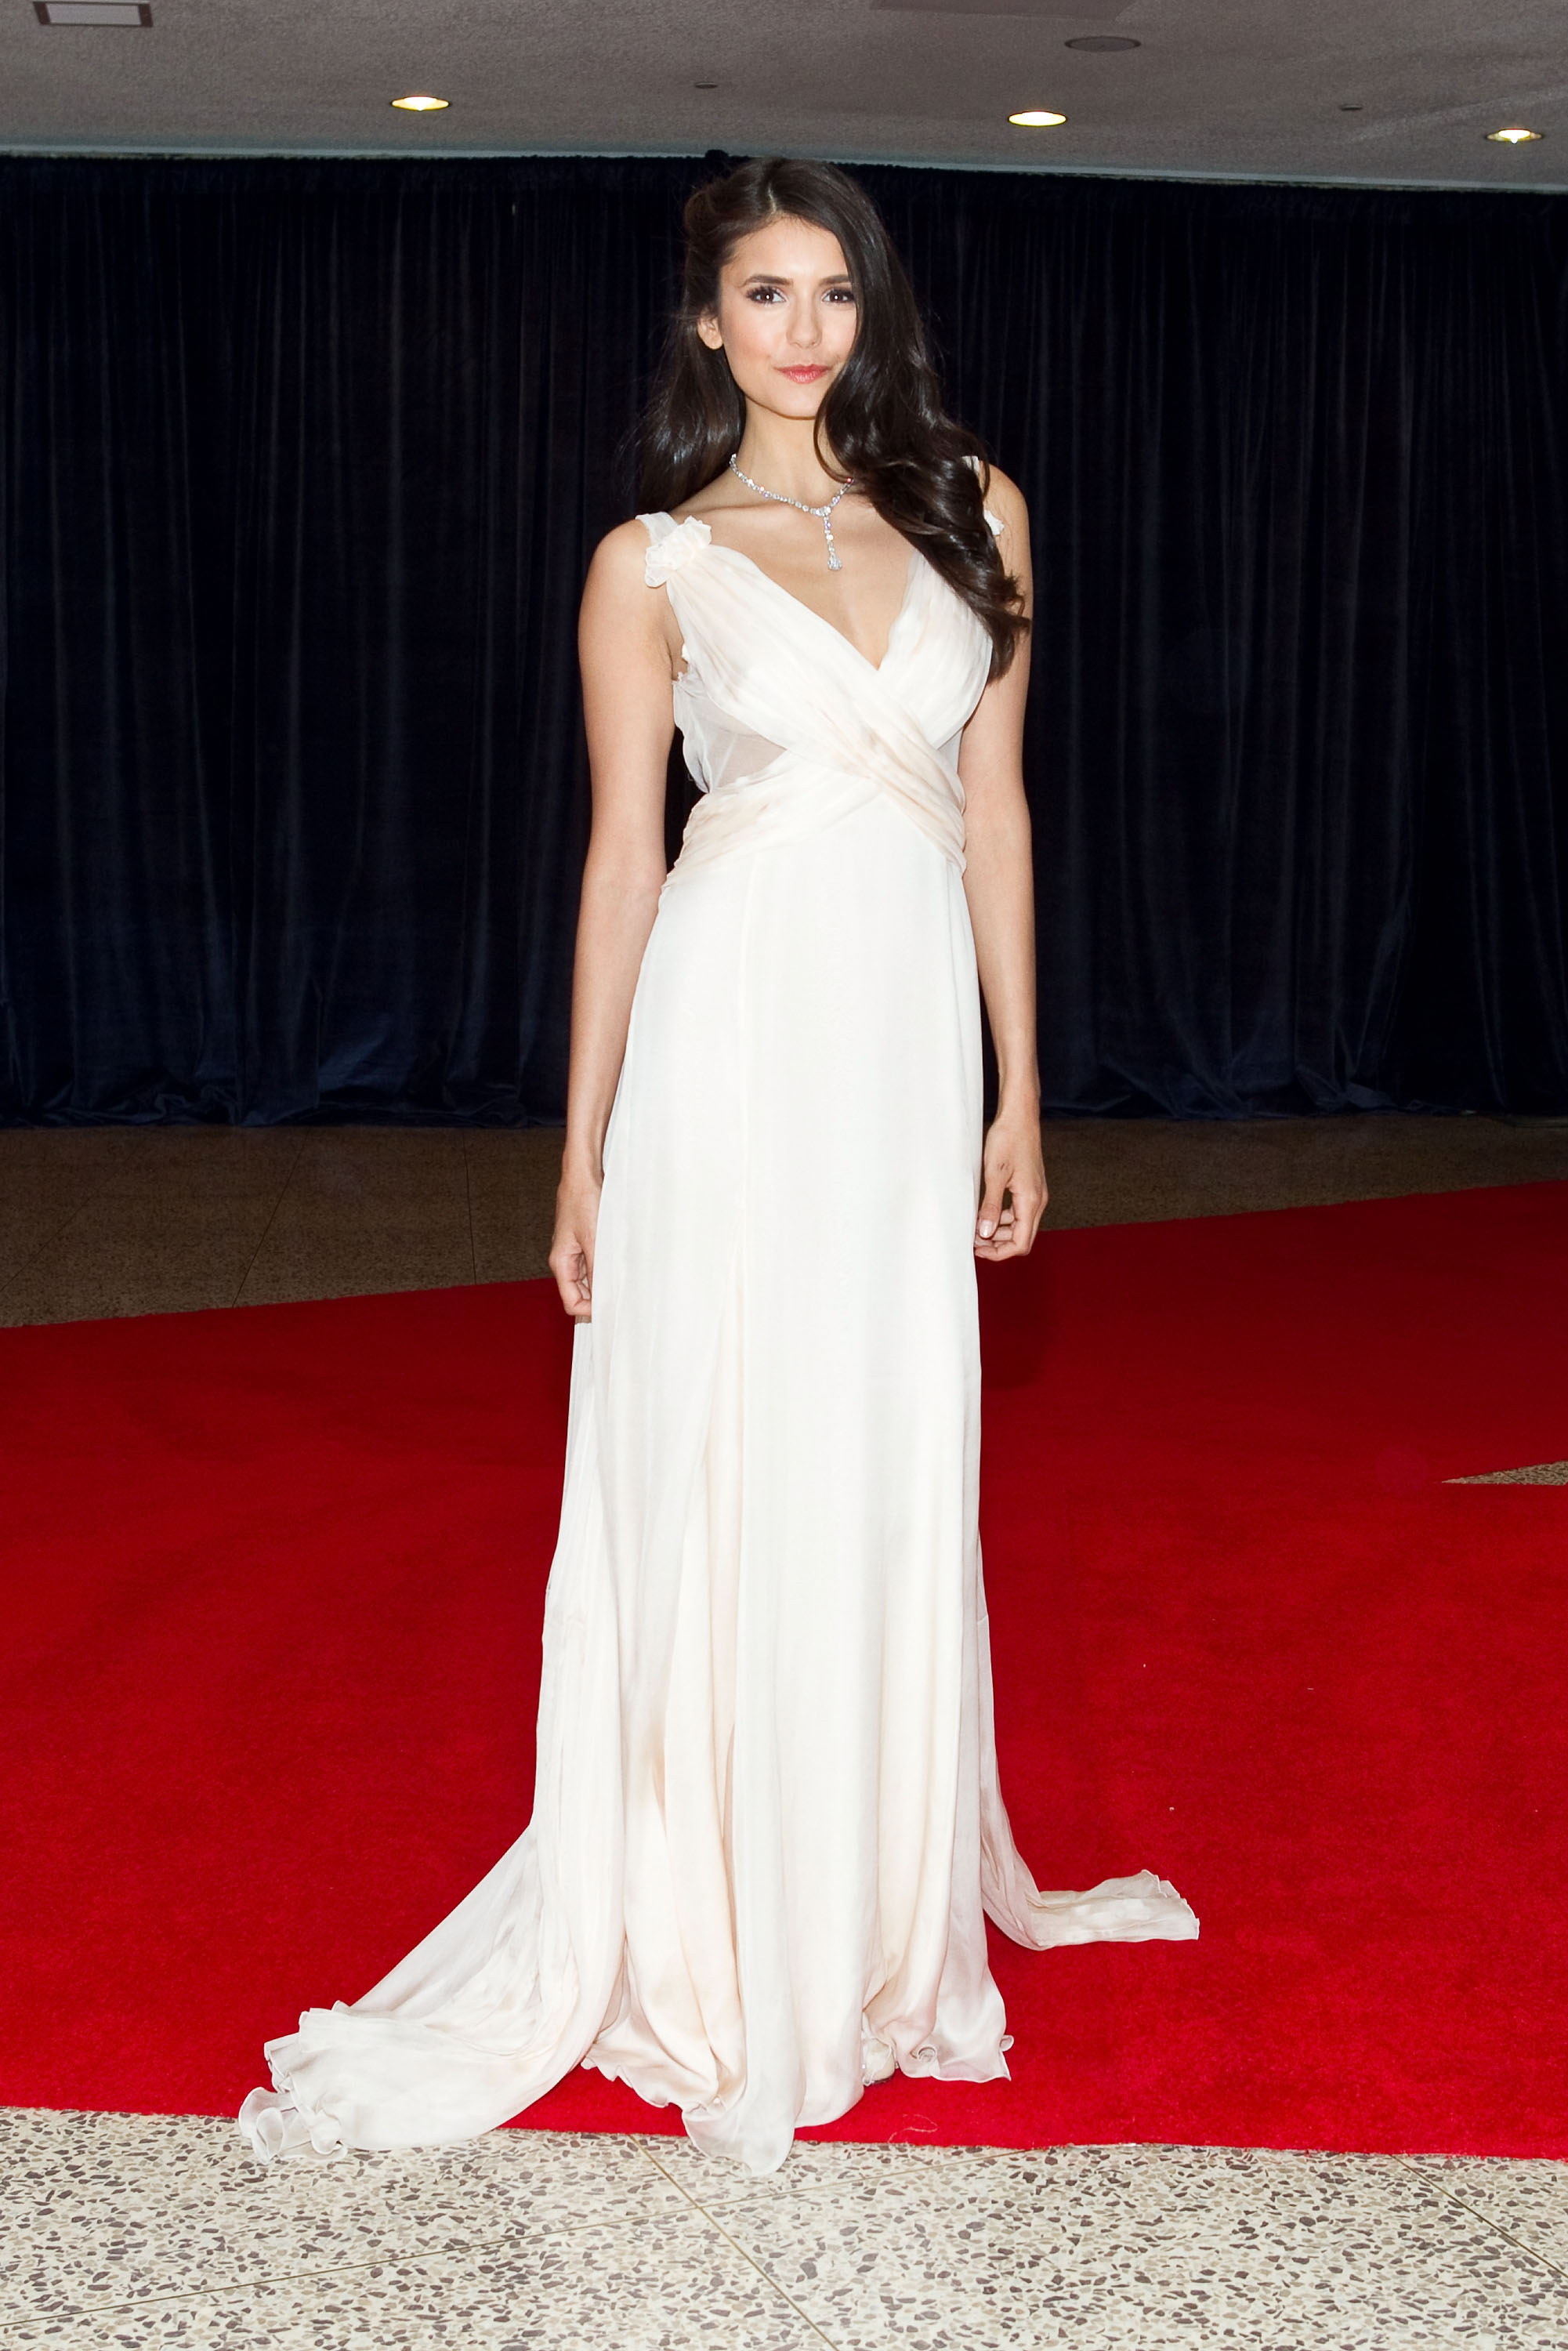 She wowed in a gorgeous white gown at the 2011 White House Correspondents' Association dinner.